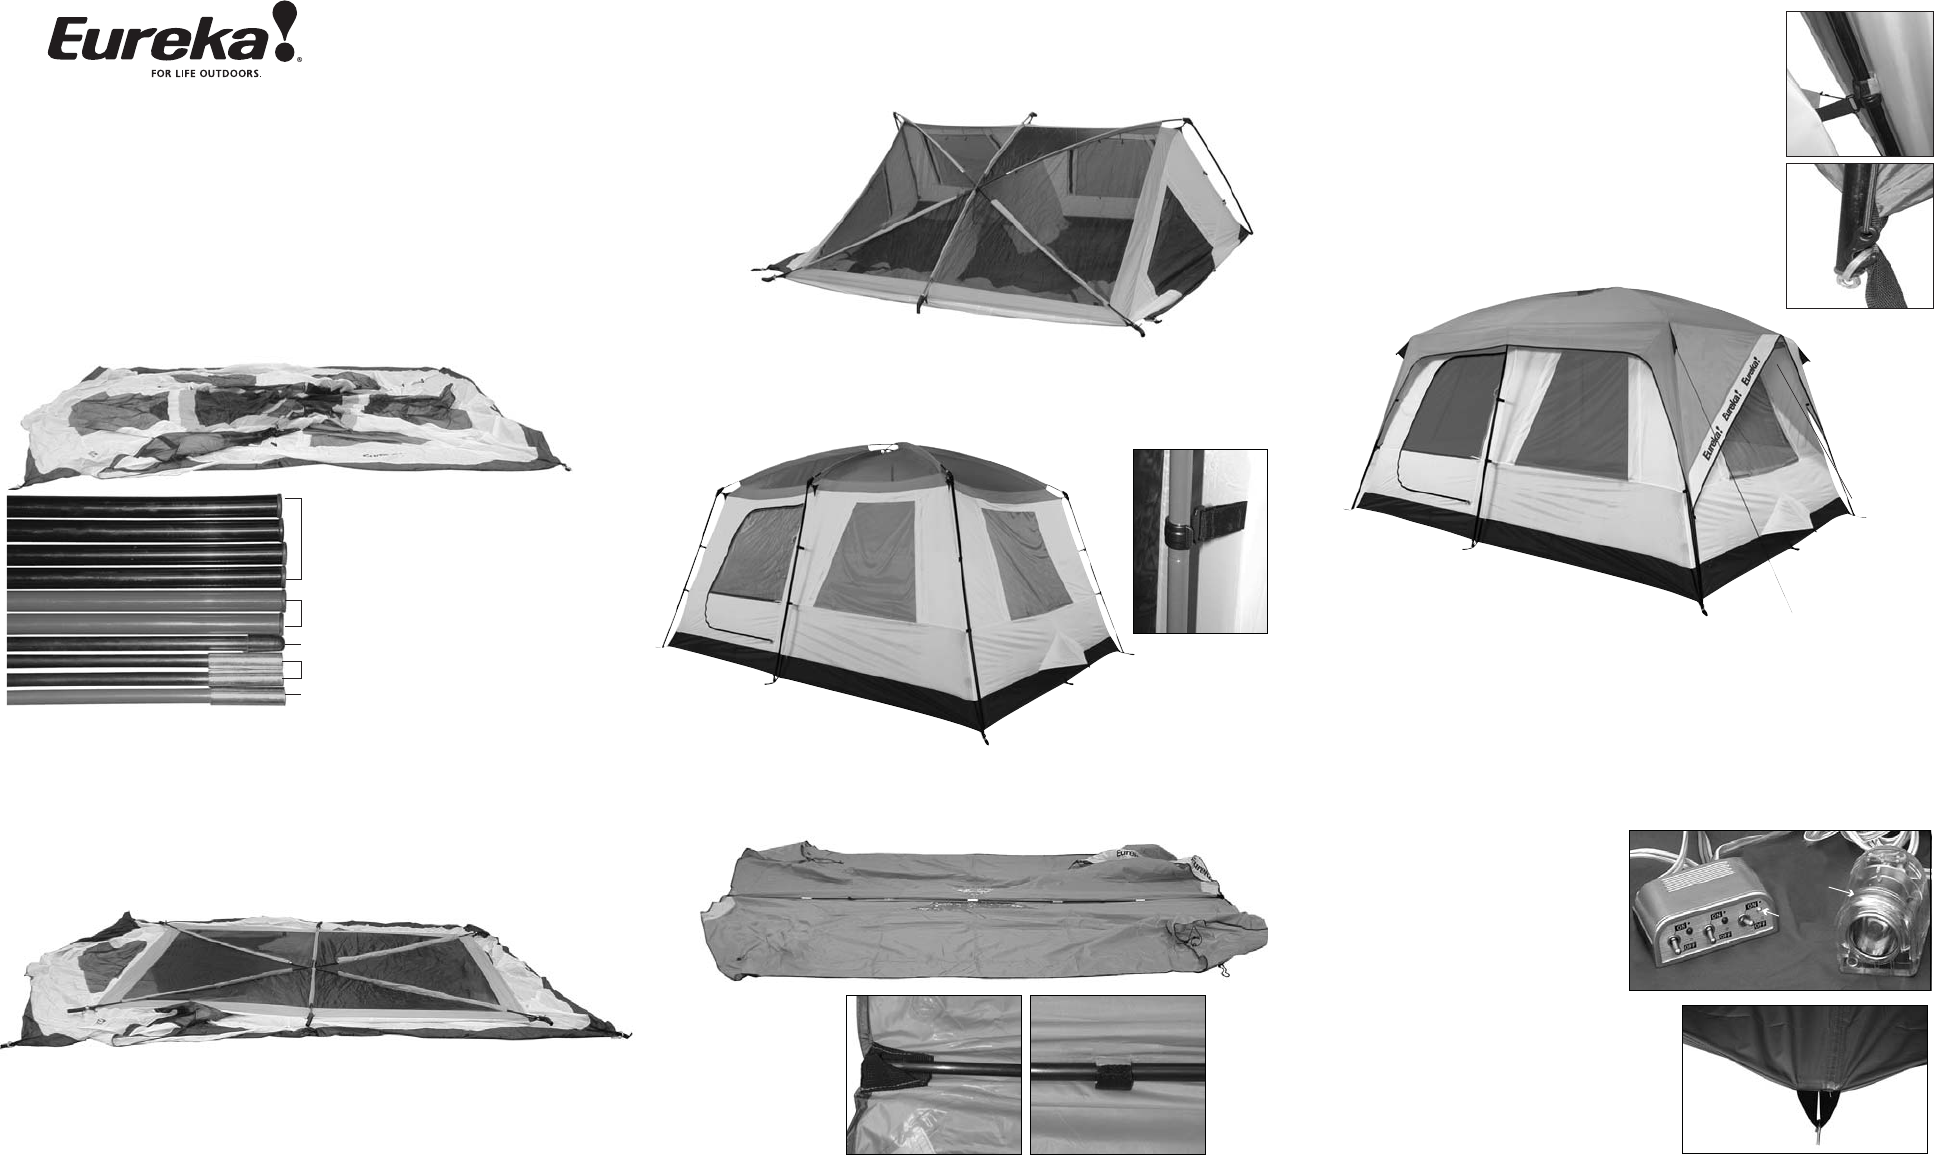 Eureka Tents Tent Nergy 1310 User Guide Manualsonline